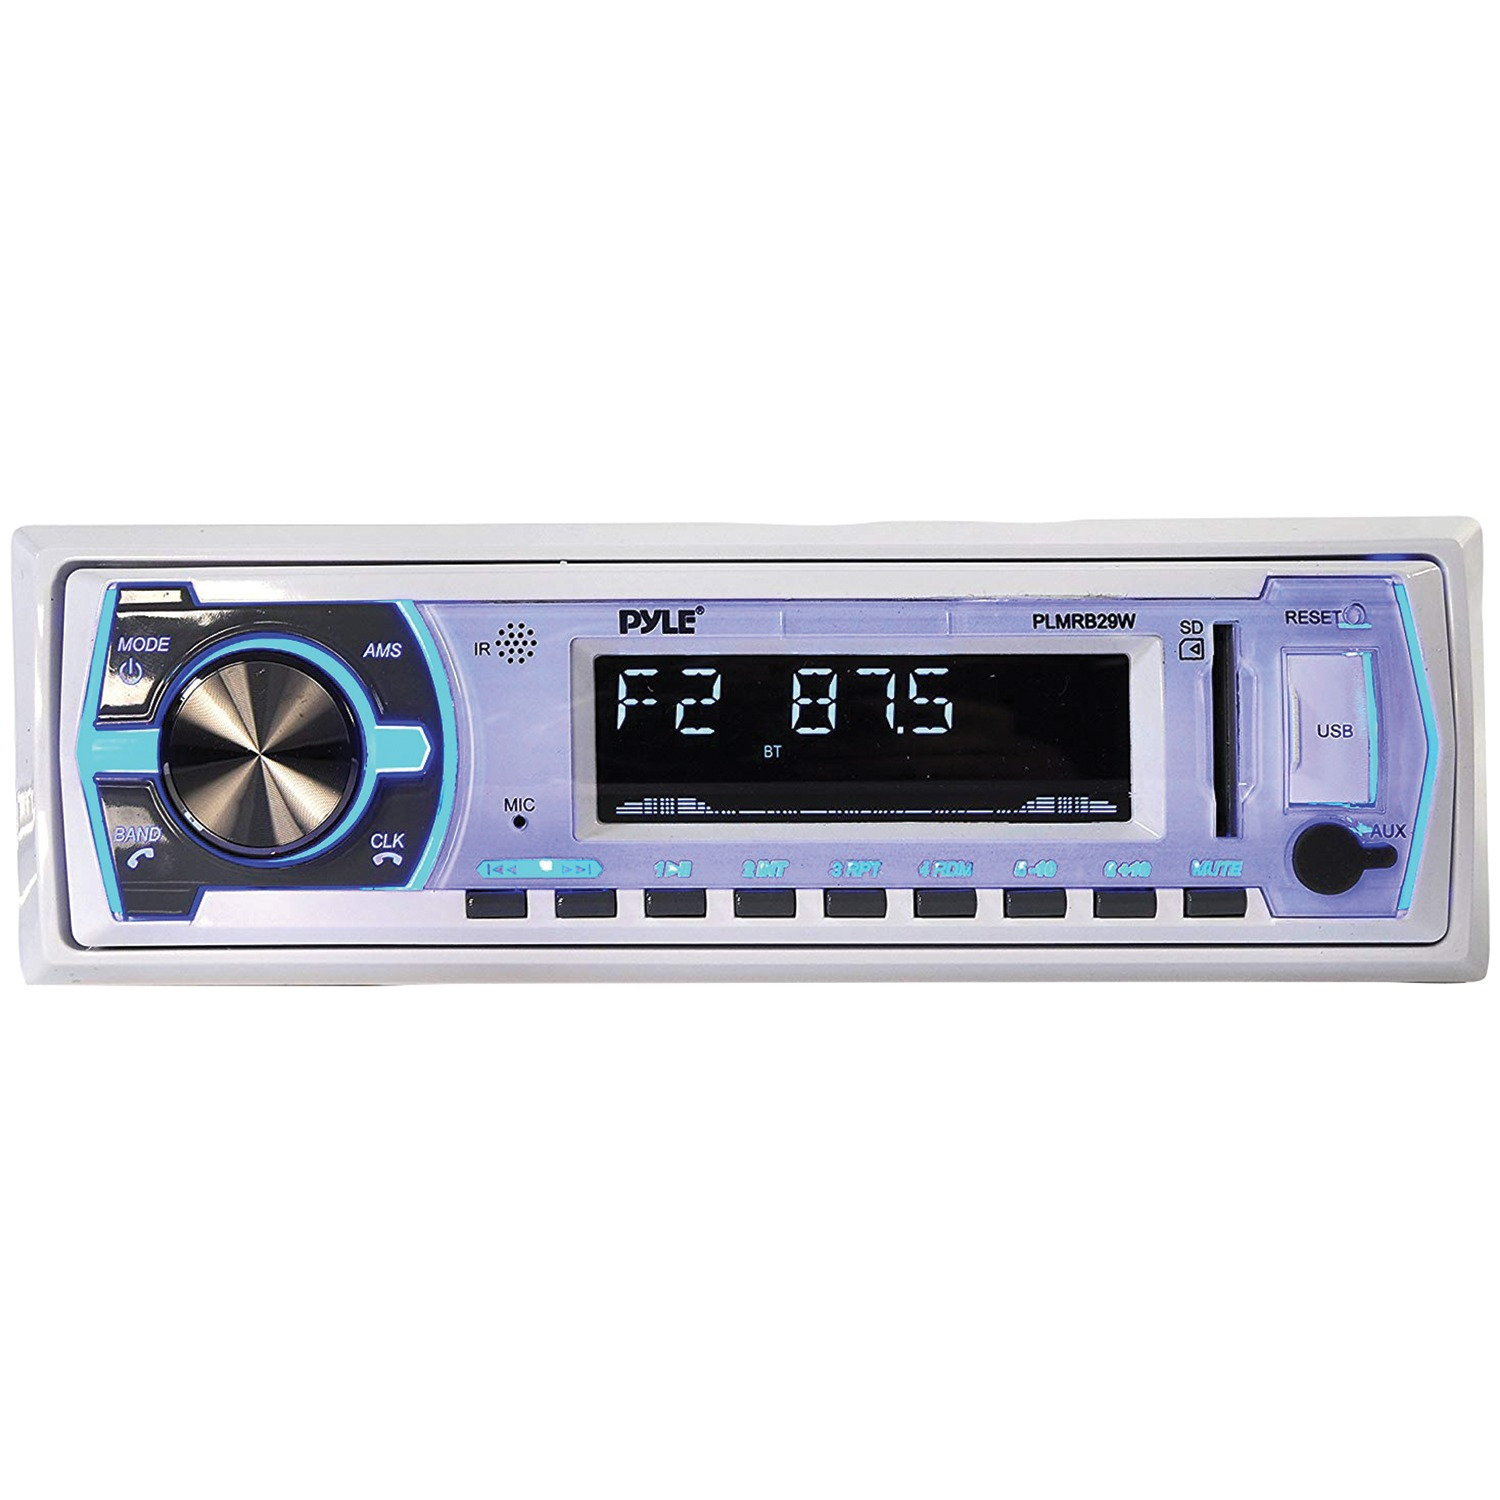 Pyle PLMRB29W Digital Marine Stereo Receiver with Bluetooth (White)